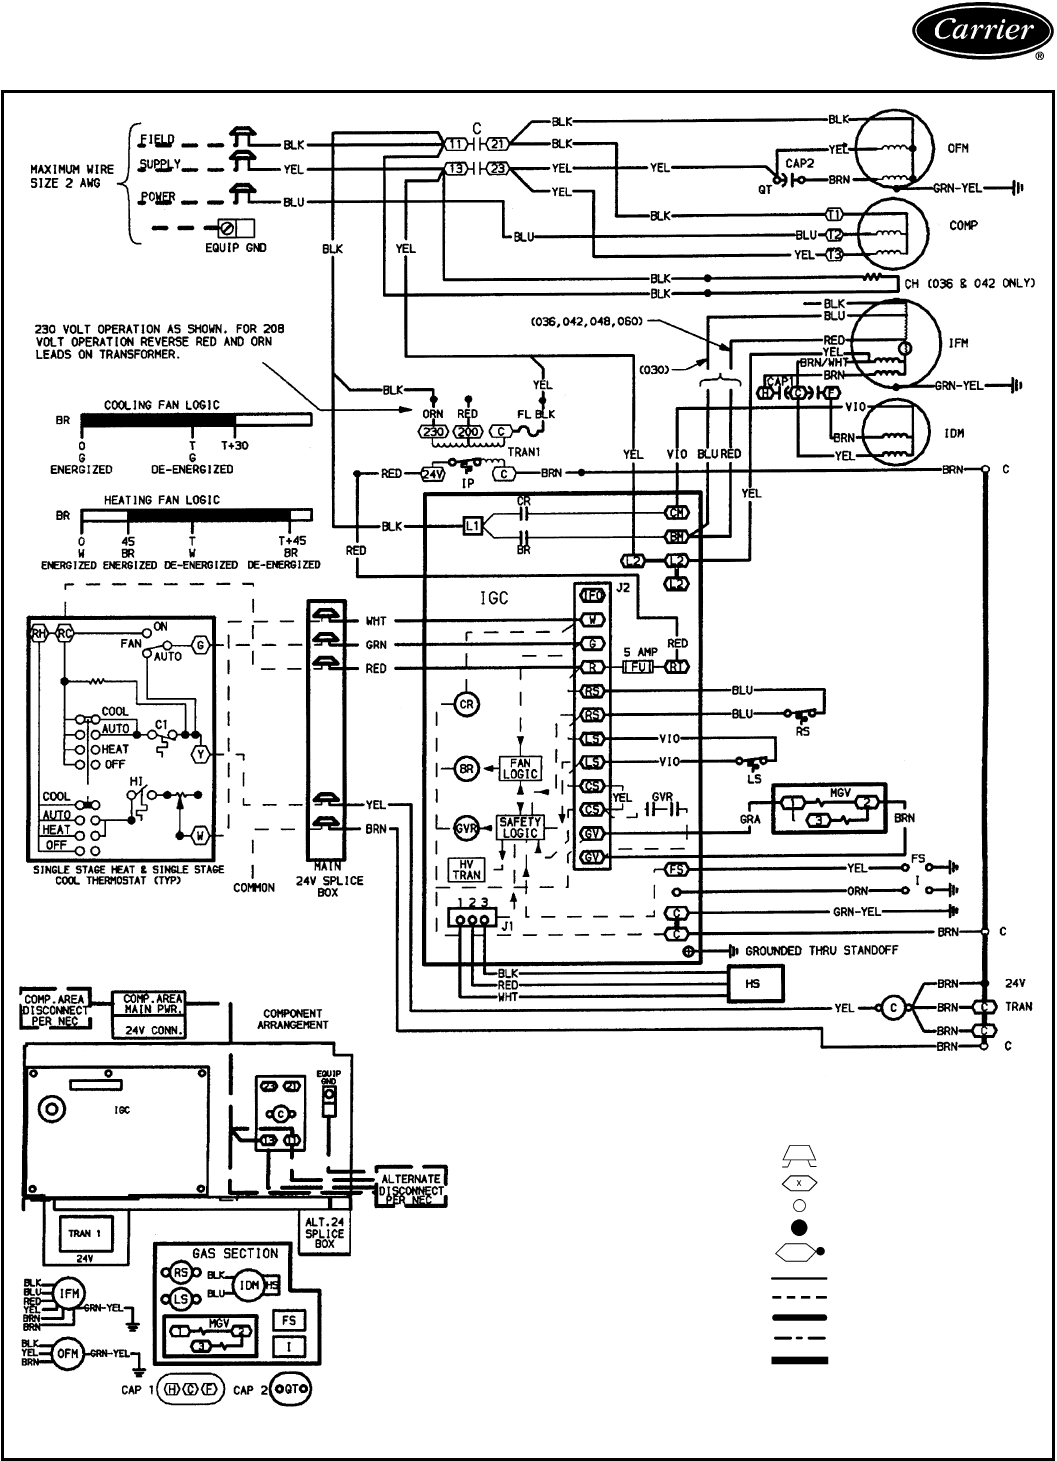 on images of trane gas unit heater wiring diagrams model wire